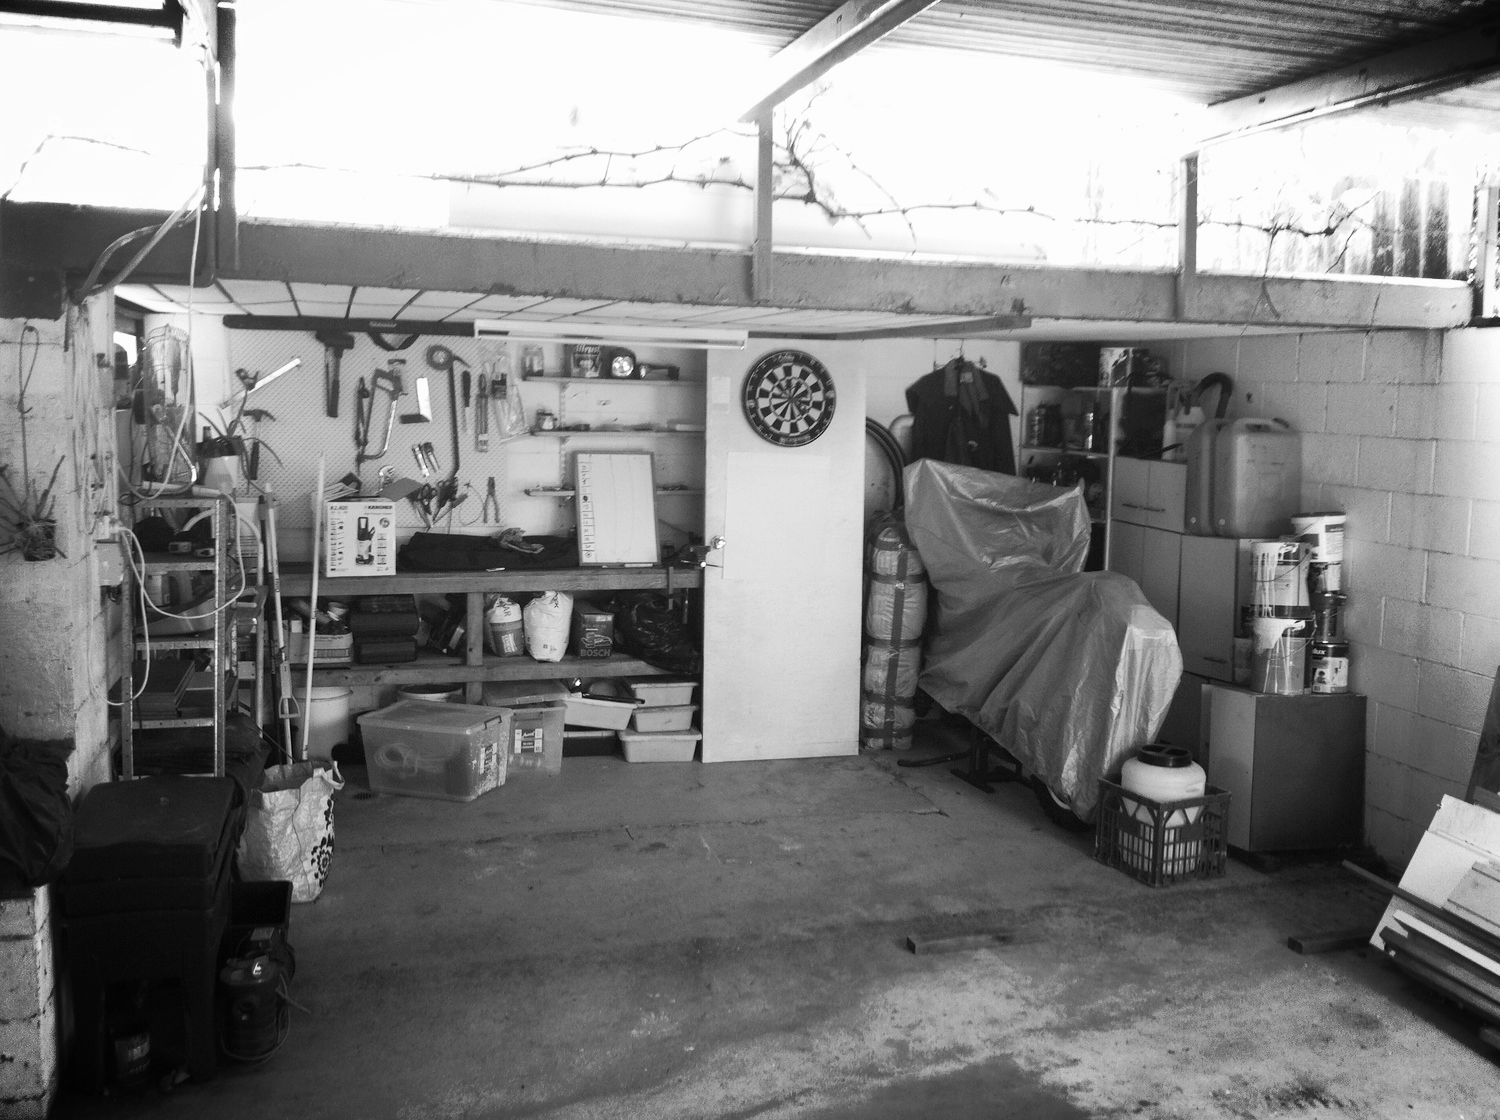 The old garage had not been sorted since we moved in...